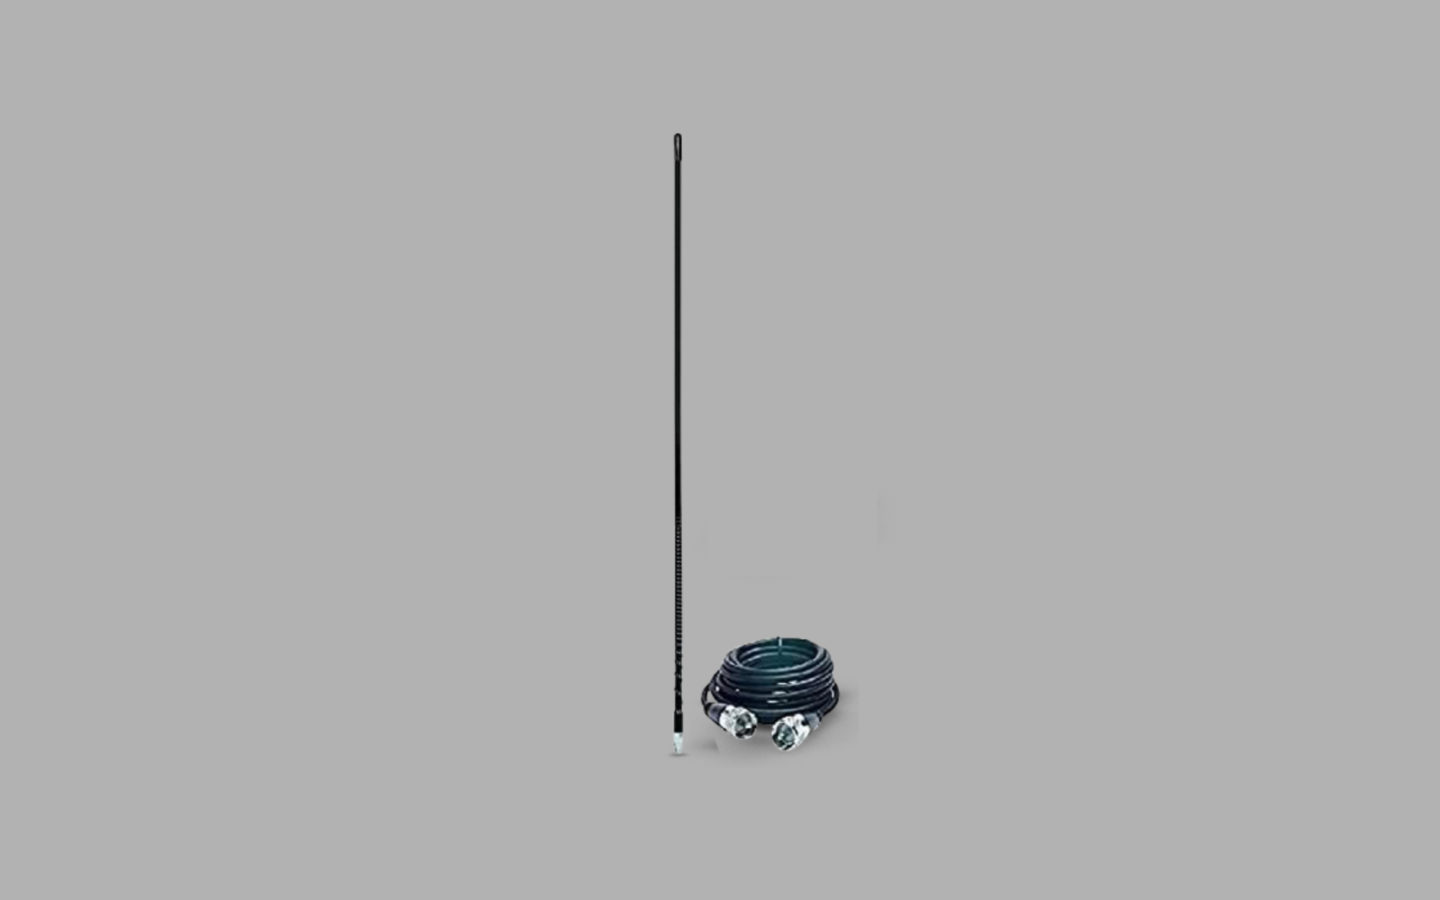 Best CB Antenna 10